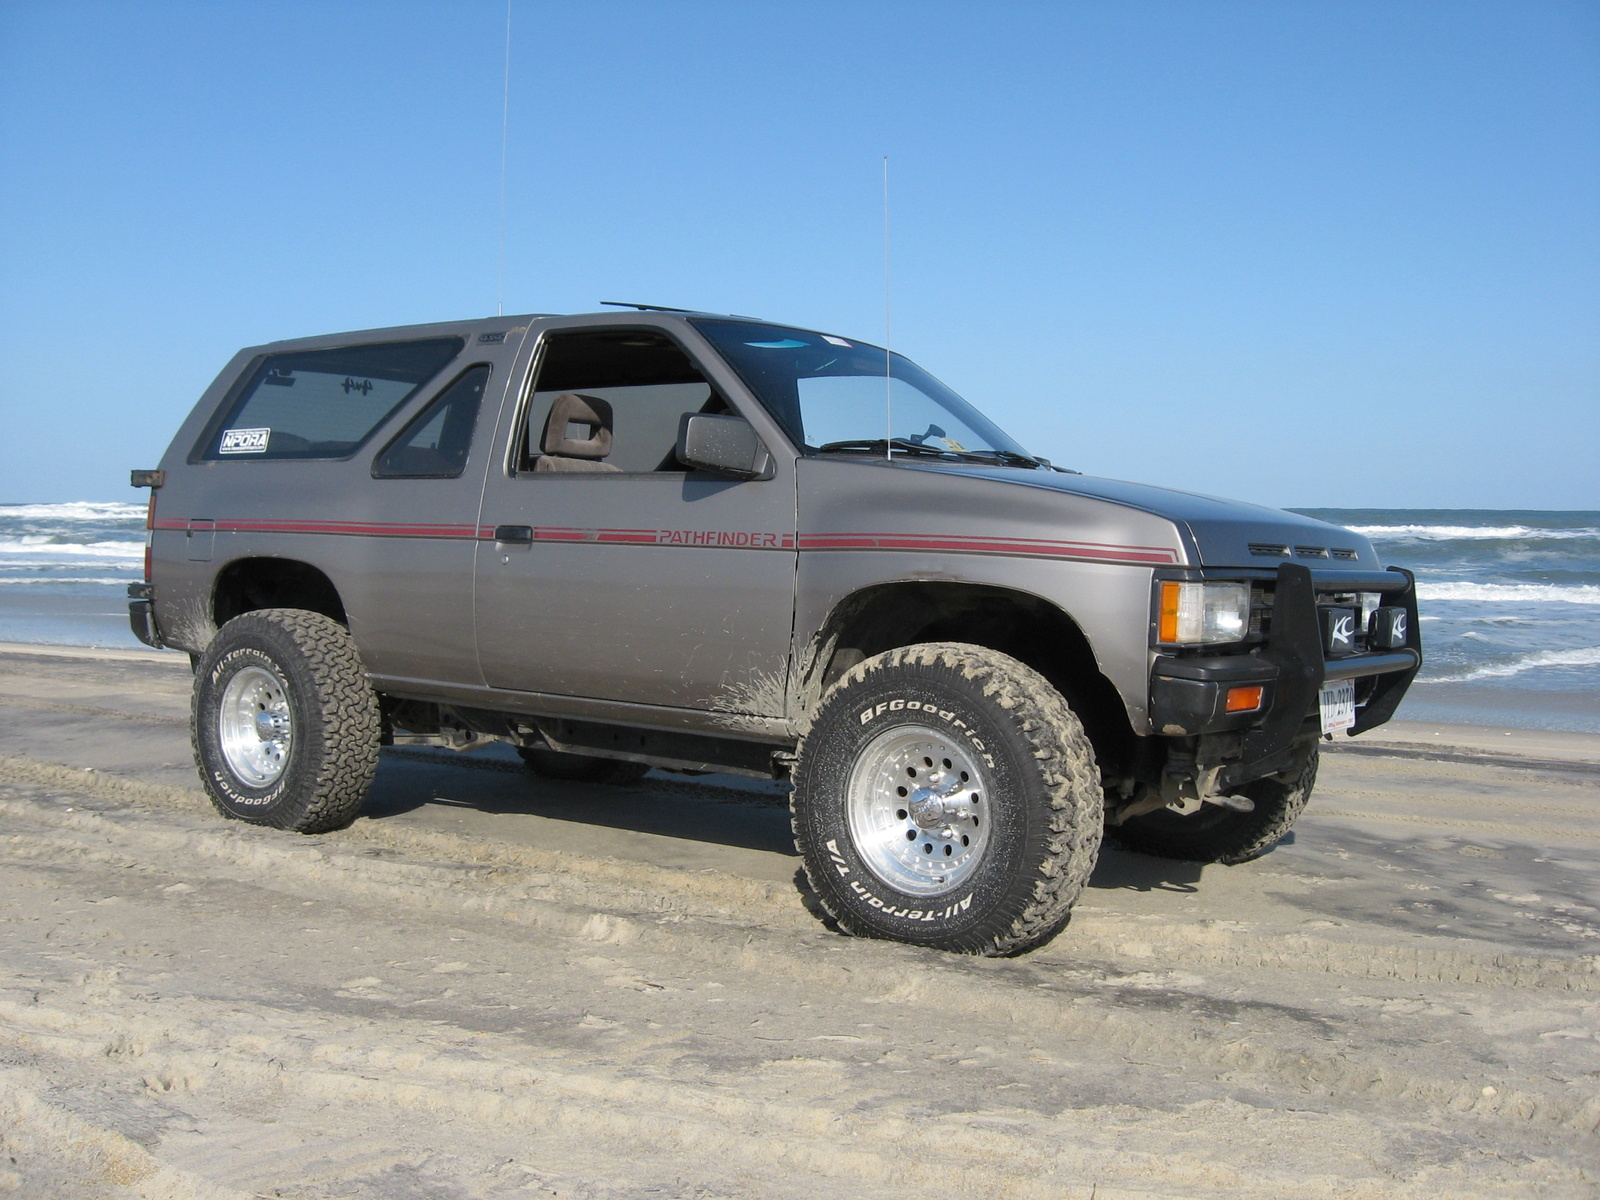 Download nissan-pathfinder-1987-11.jpg